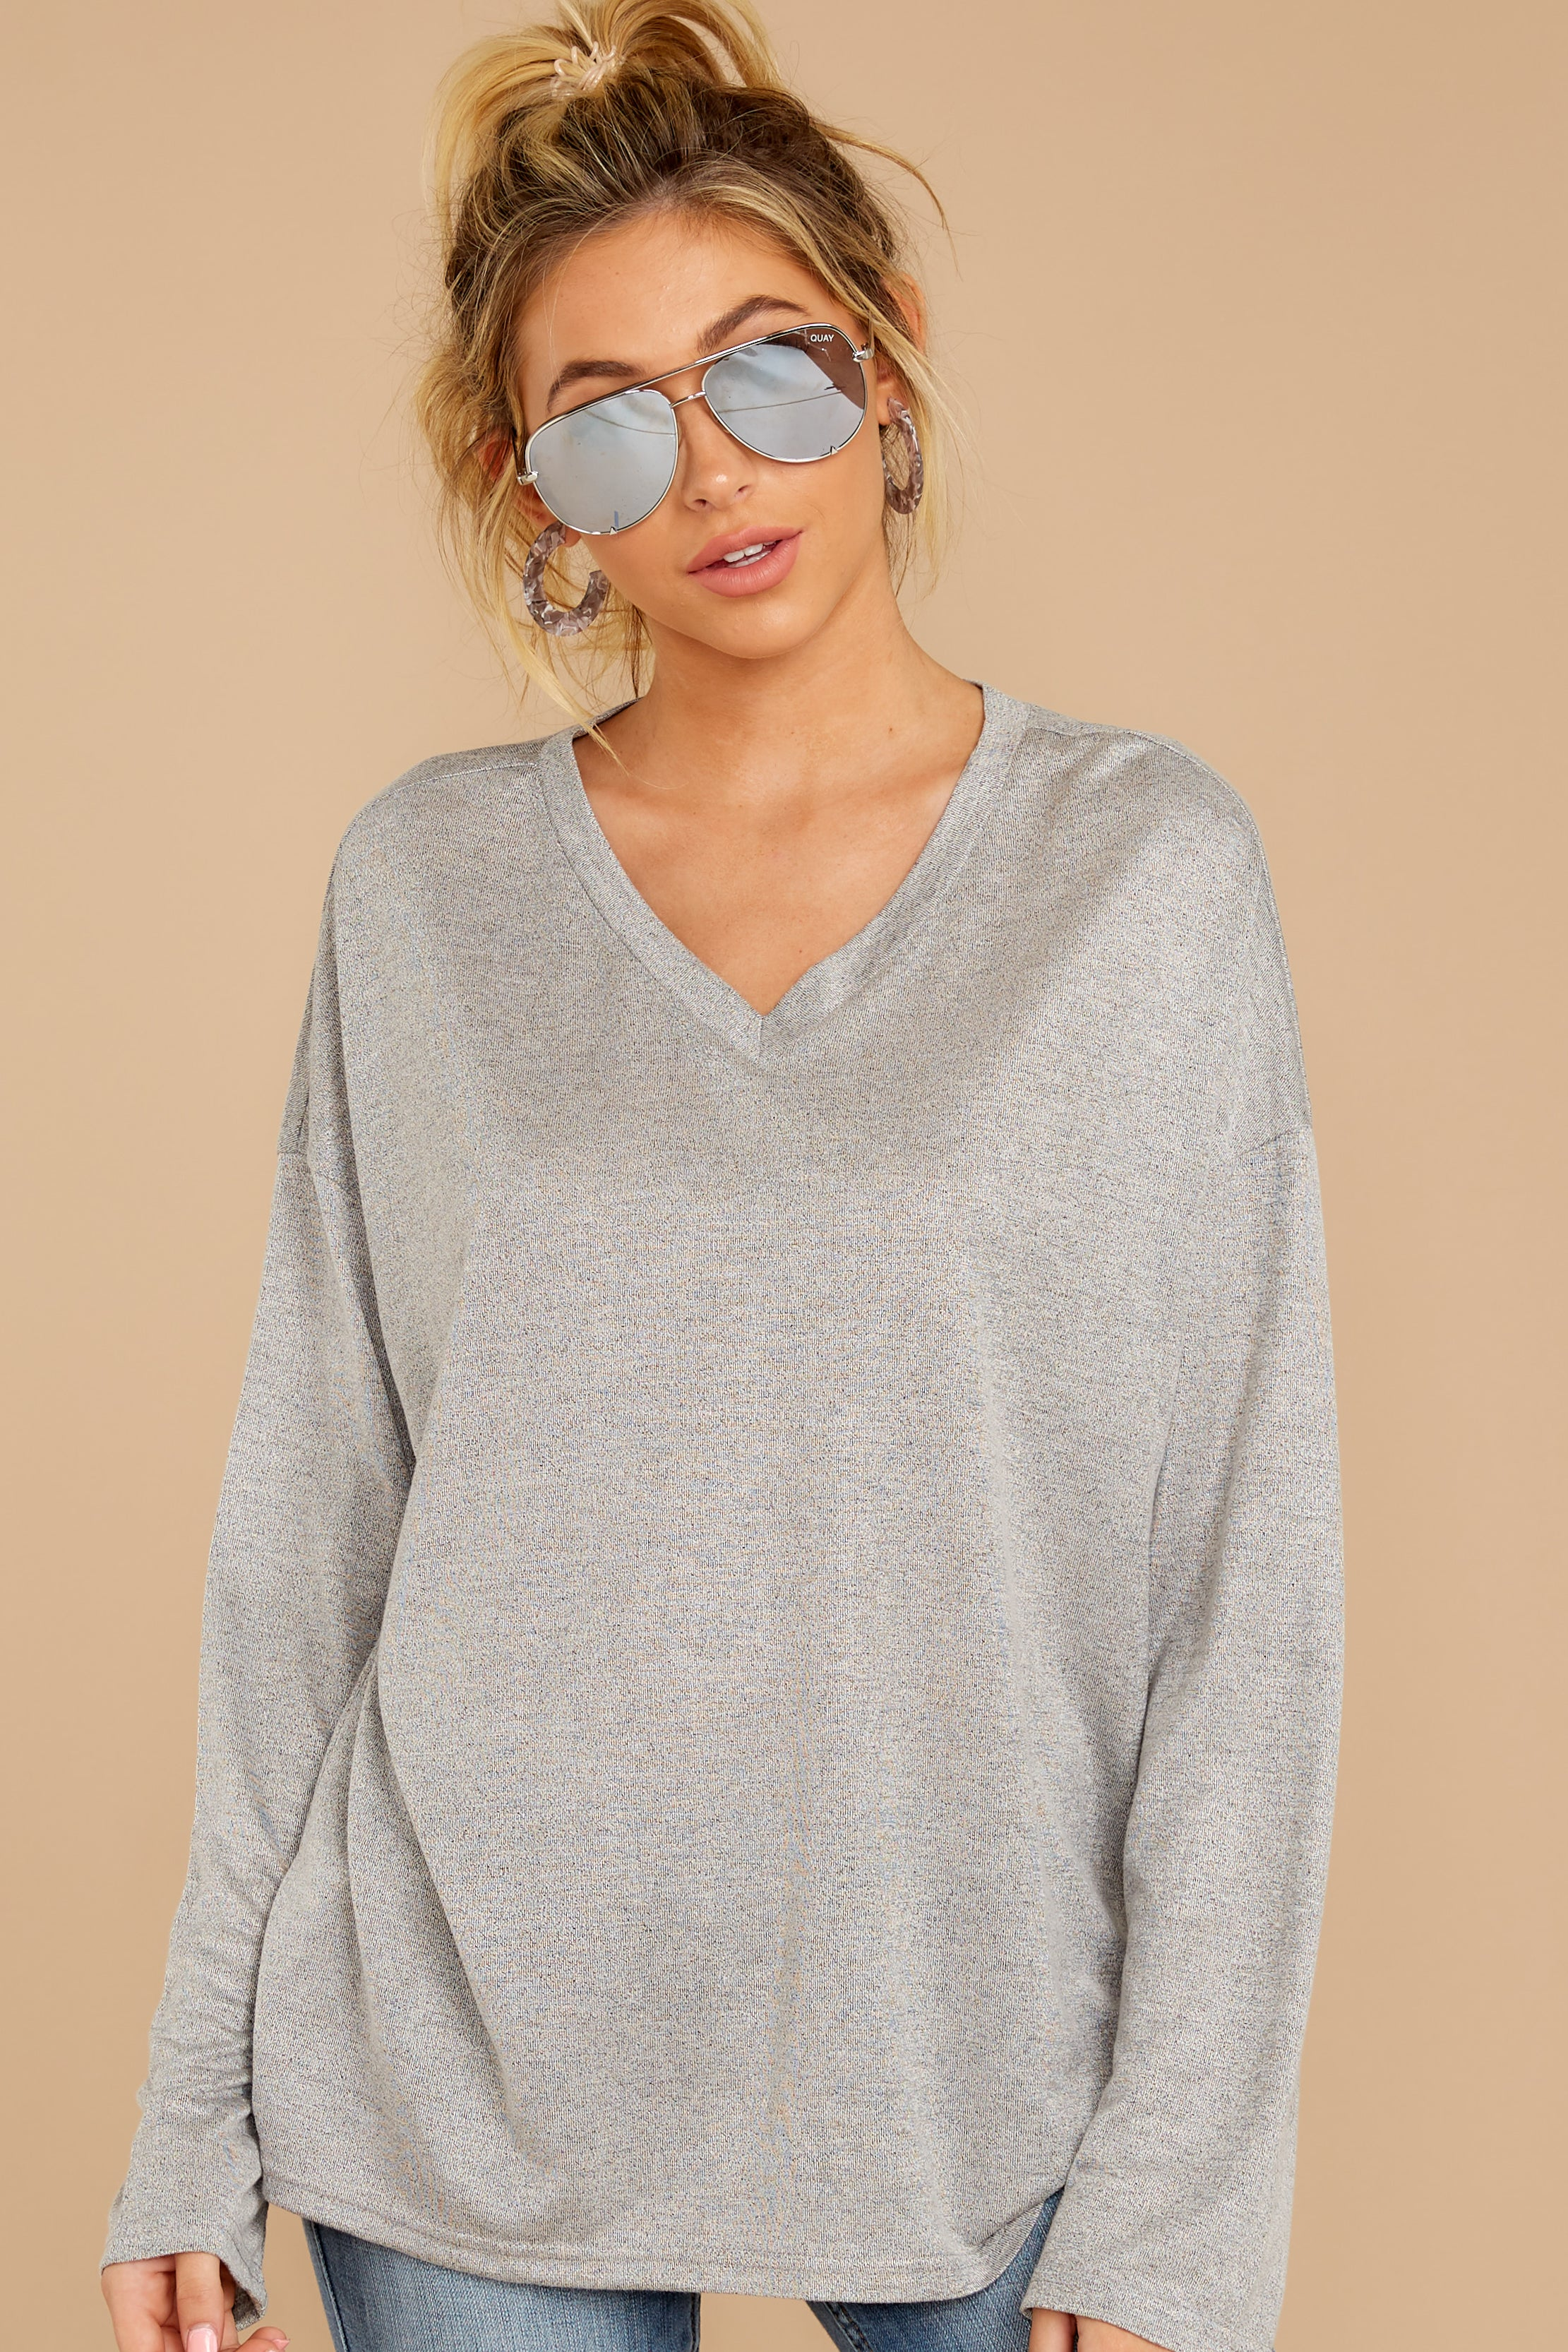 5 Talk To Ya Later Heather Grey Top at reddressboutique.com